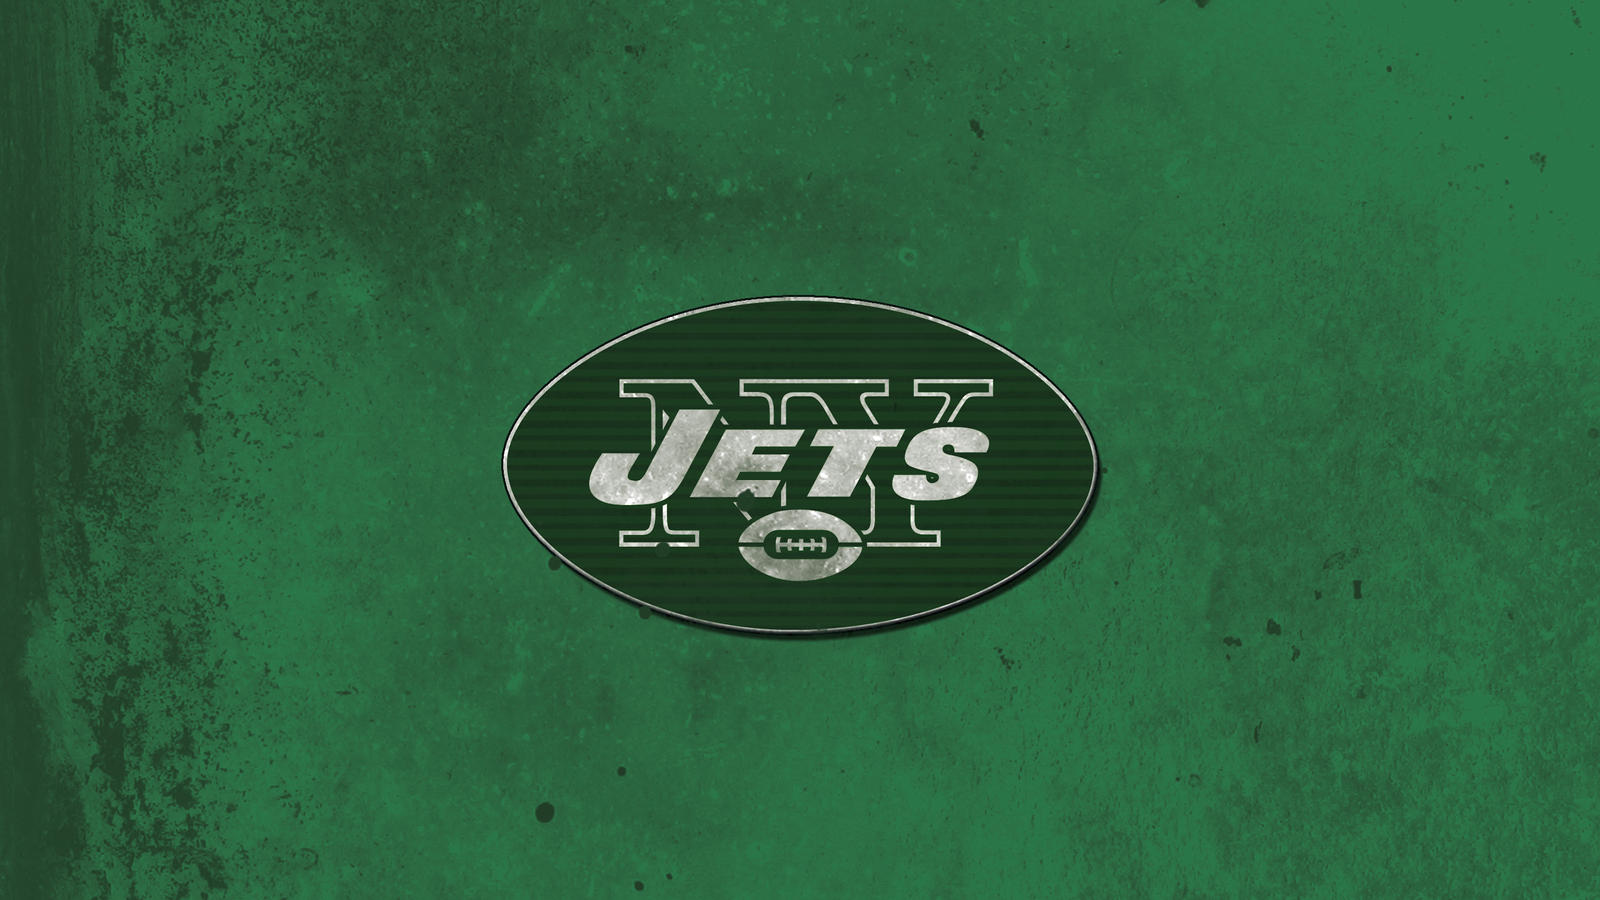 New York Jets By BeAware8